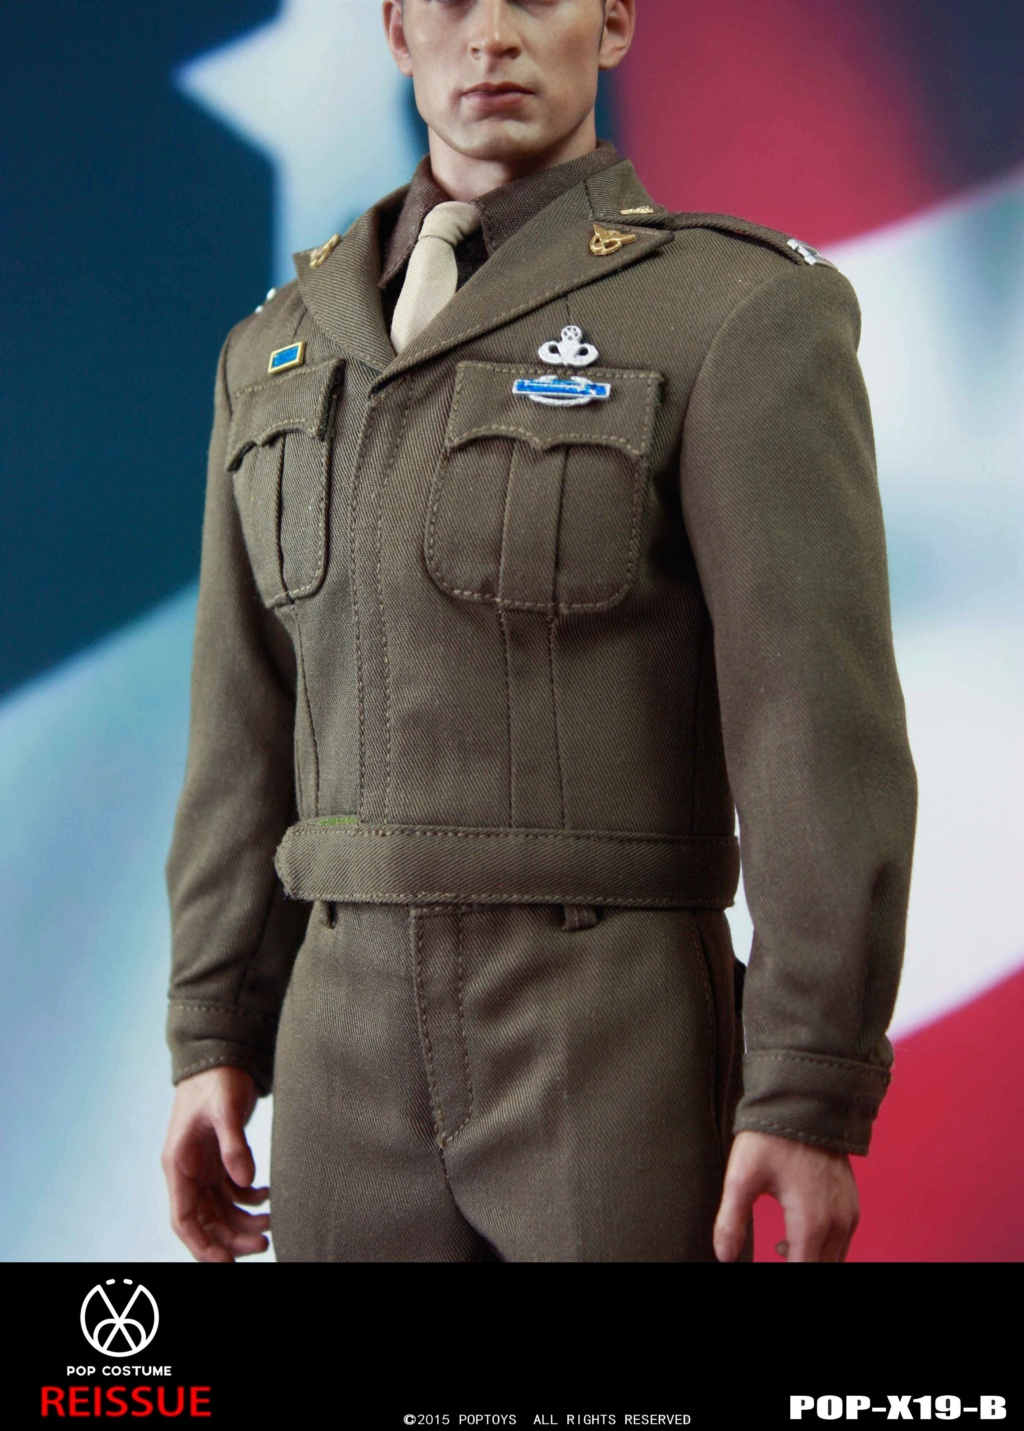 male - NEW PRODUCT: POPTOYS: 1/6 Series X19 - World War II Golden Age US Army Uniform Uniform Set - B (Reprinted in 2019) 21302211